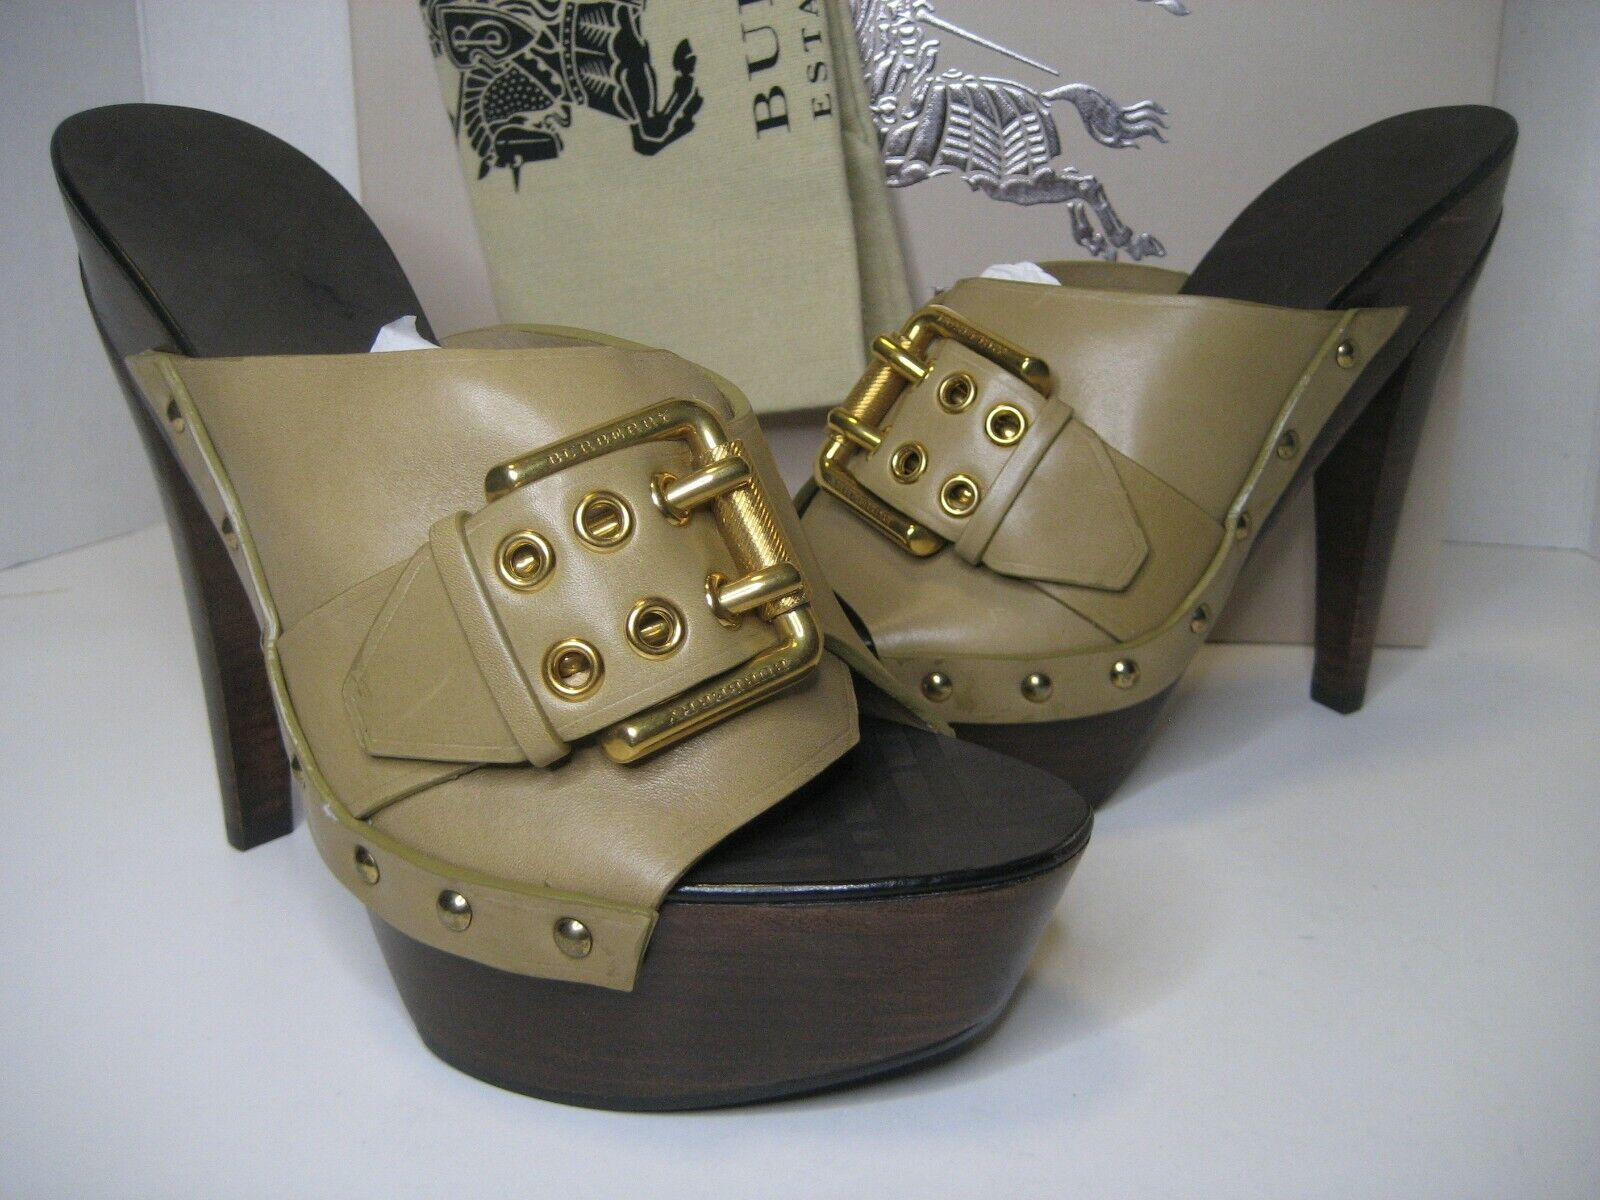 495 NEW Burberry US 75 EU 38 Tan Trench Oversize Buckle Clogs Sandals Shoes BX